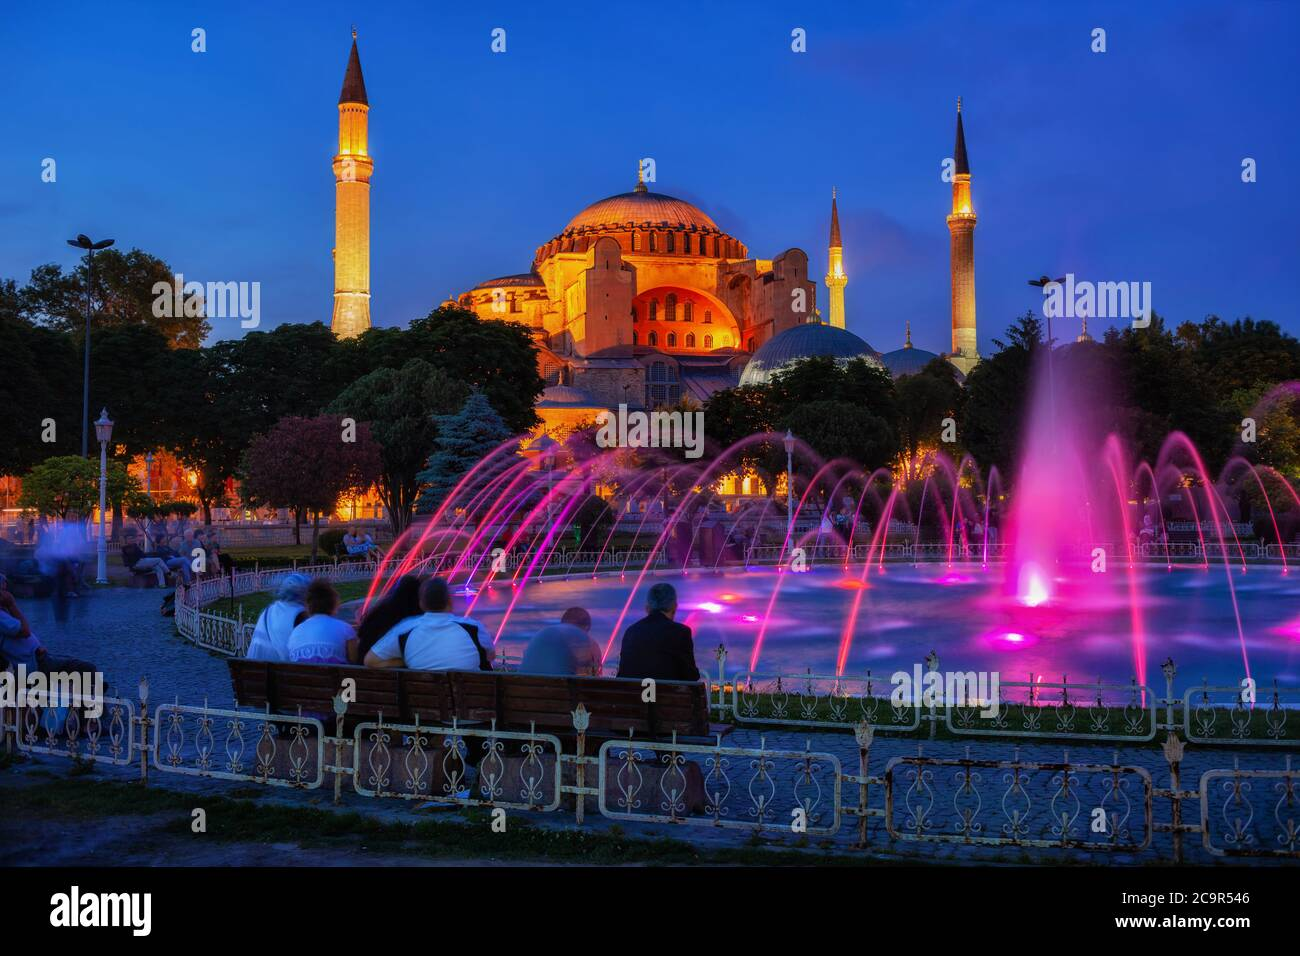 City of Istanbul in Turkey by night, people enjoy the view of Hagia Sophia (Ayasofya) and fountain in Sultanahmet Park Stock Photo